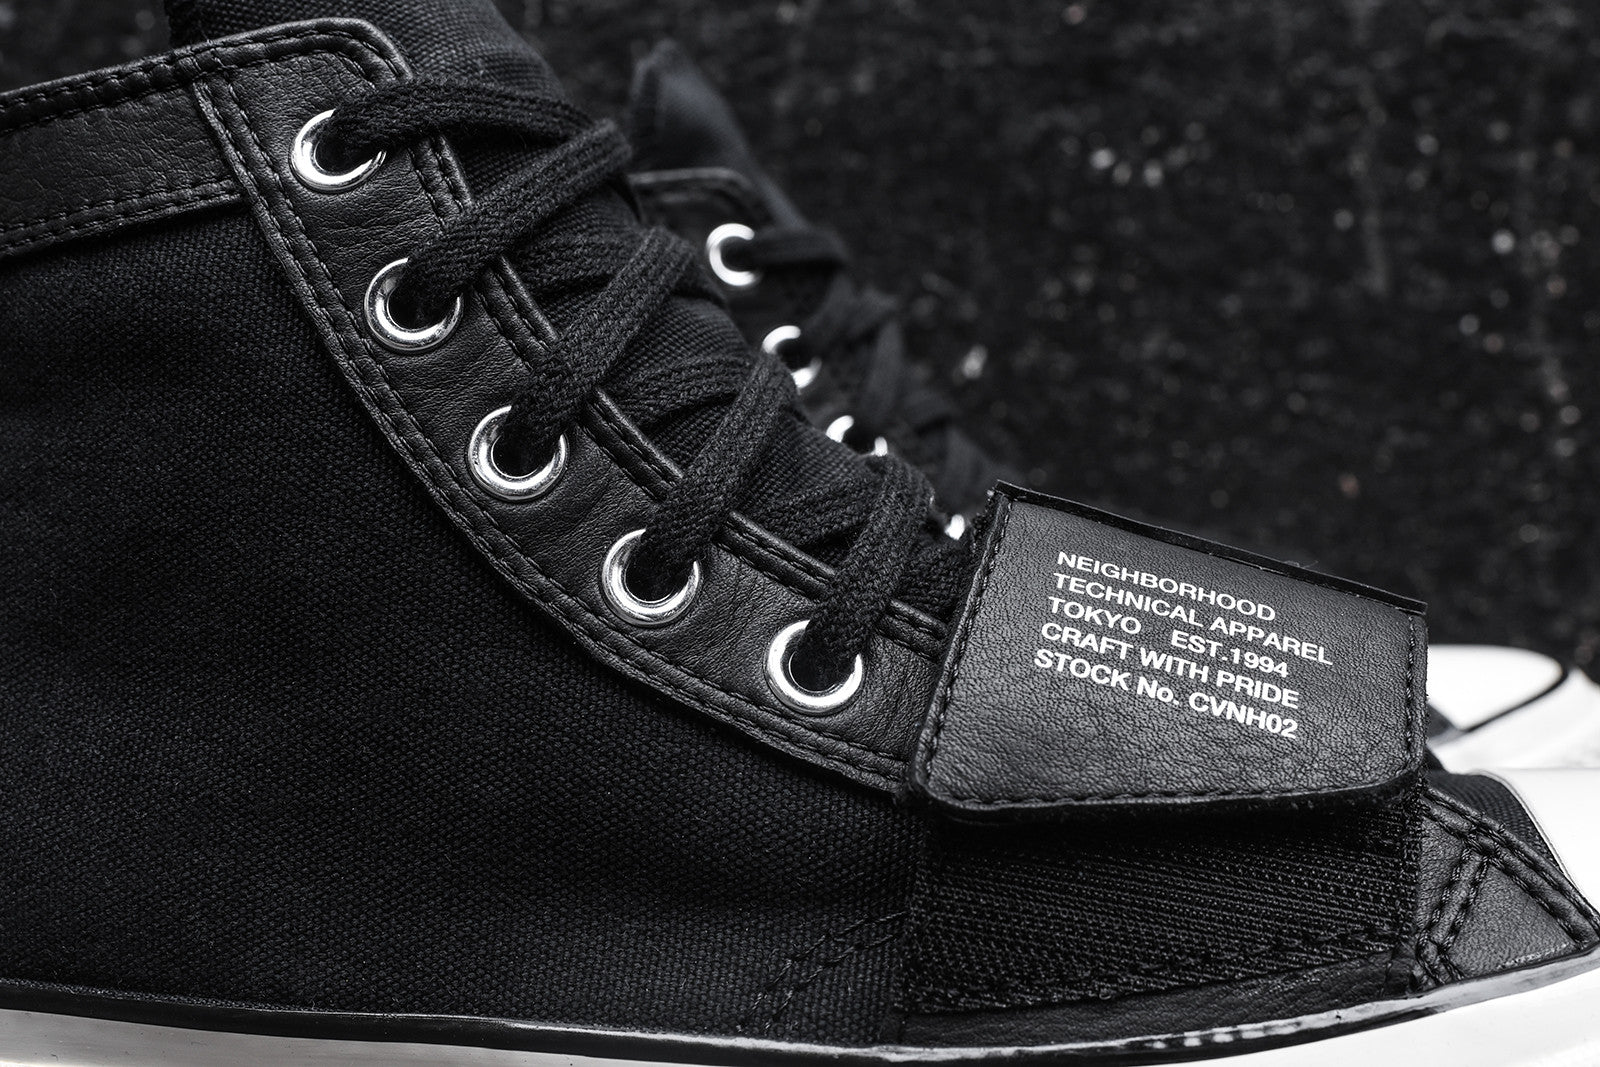 huge discount 0311d 568ad Converse x Neighborhood One Star   CT70 Pack. April 06, 2017. -8